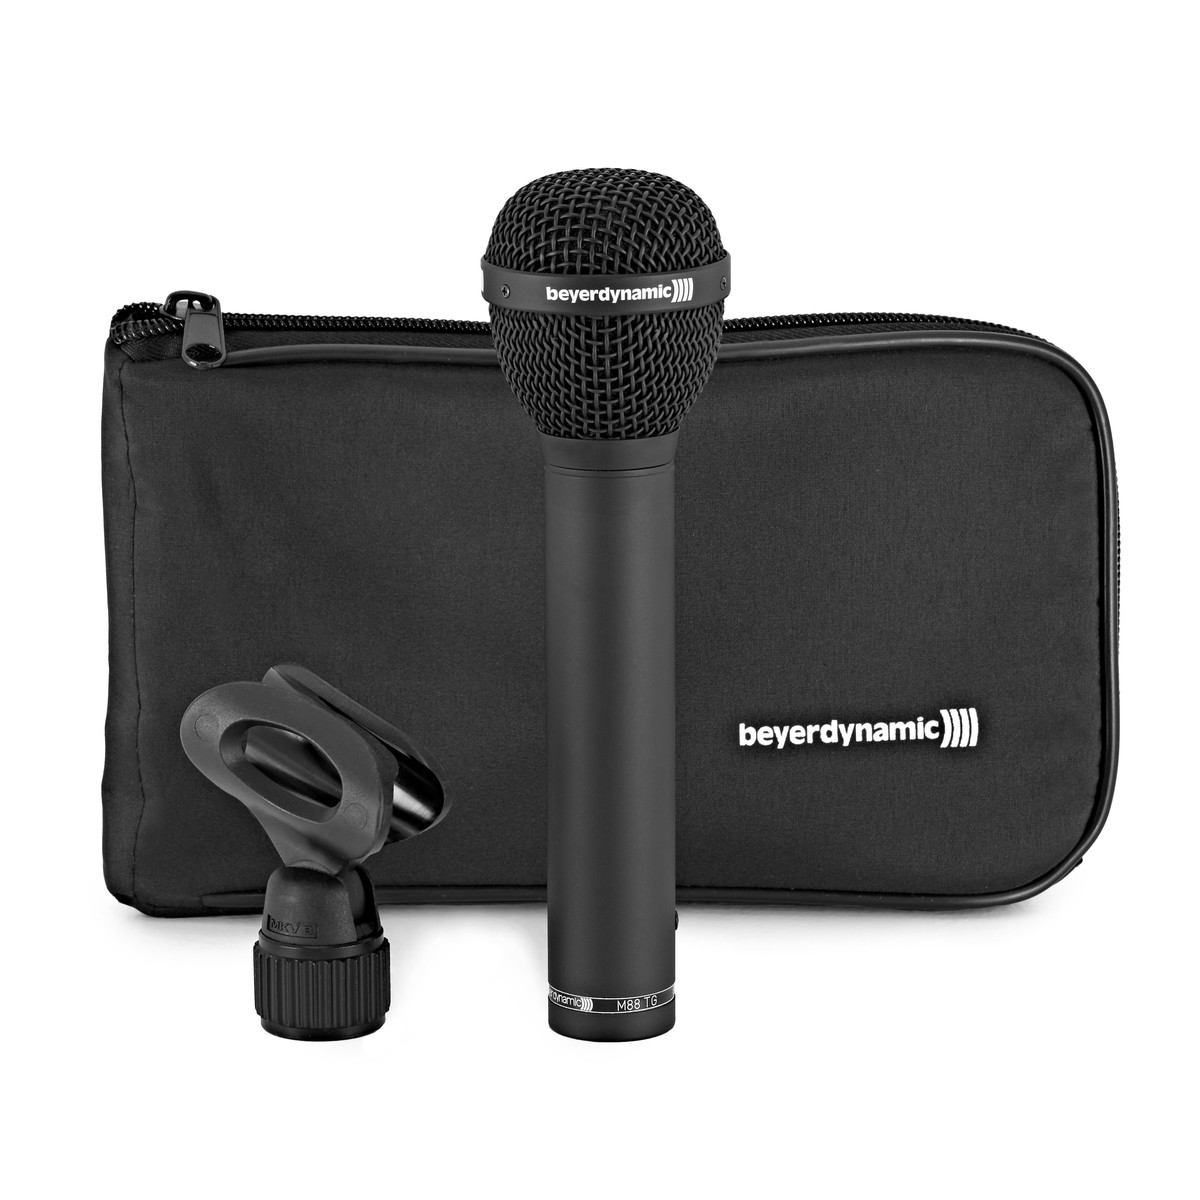 beyerdynamic mikrofoner | Gear4music